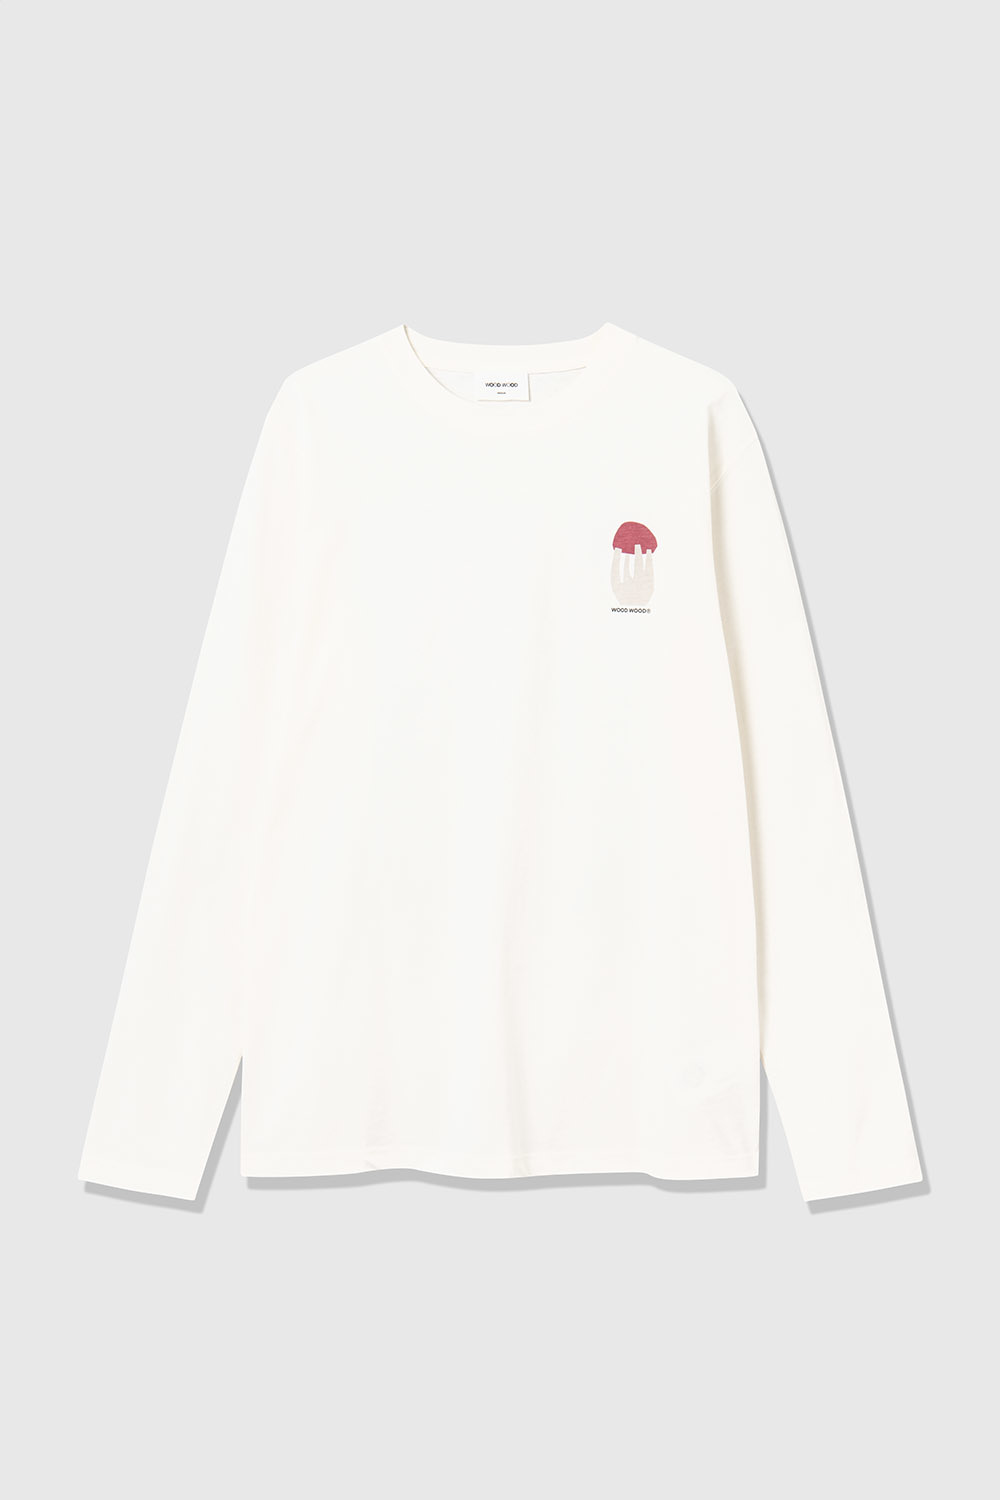 Peter Shroom Longe Sleeve White-2